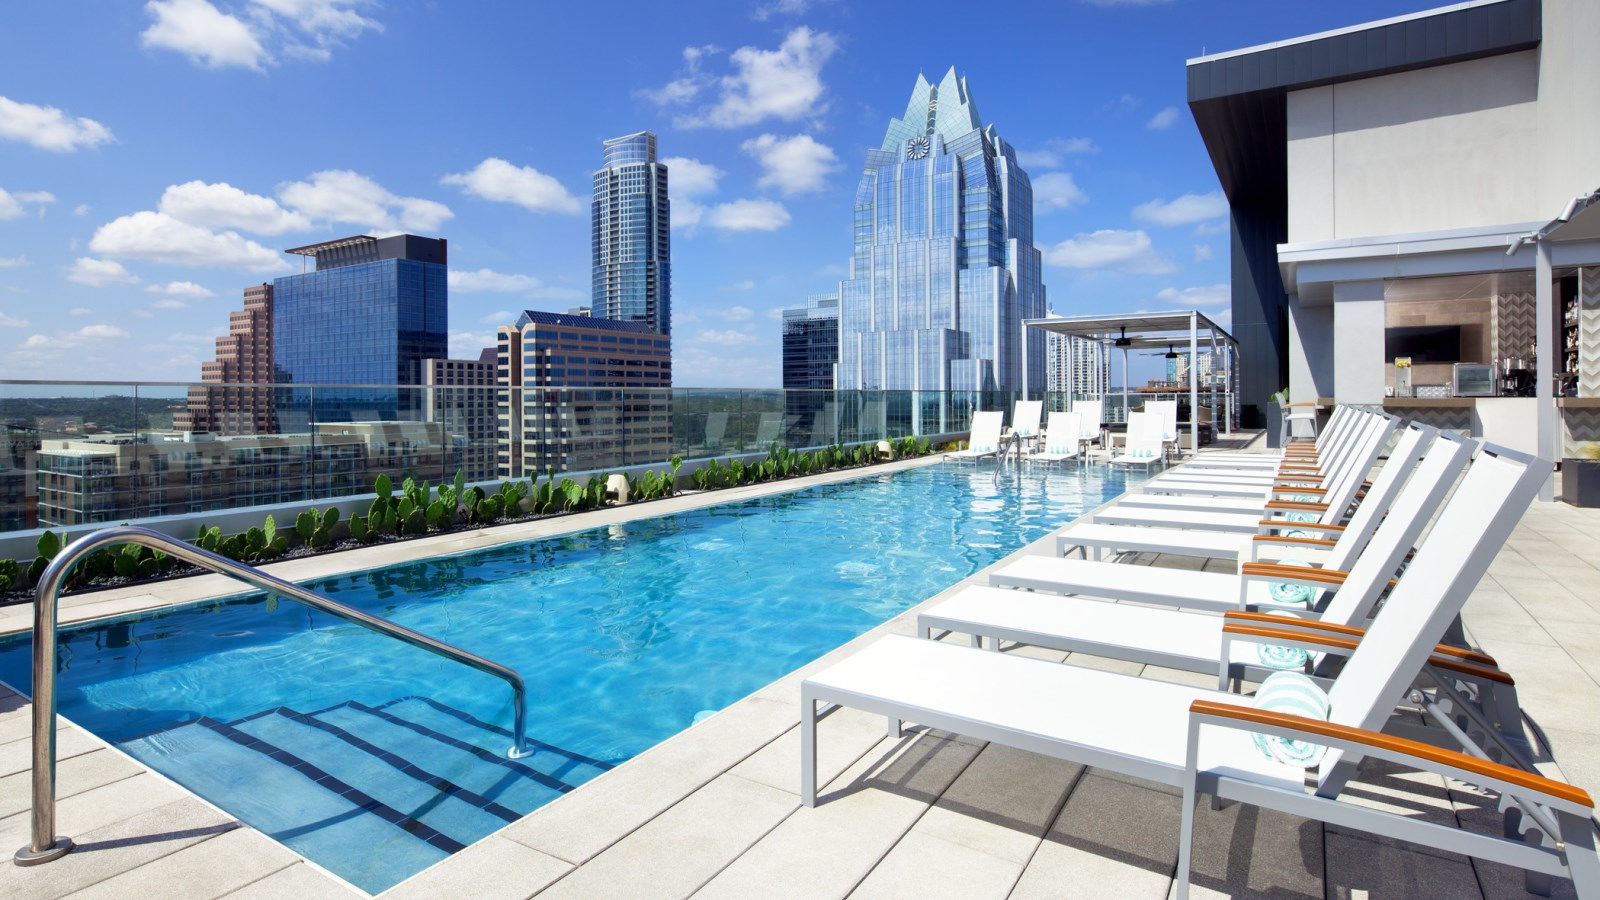 Hotels near 6th street Austin TX